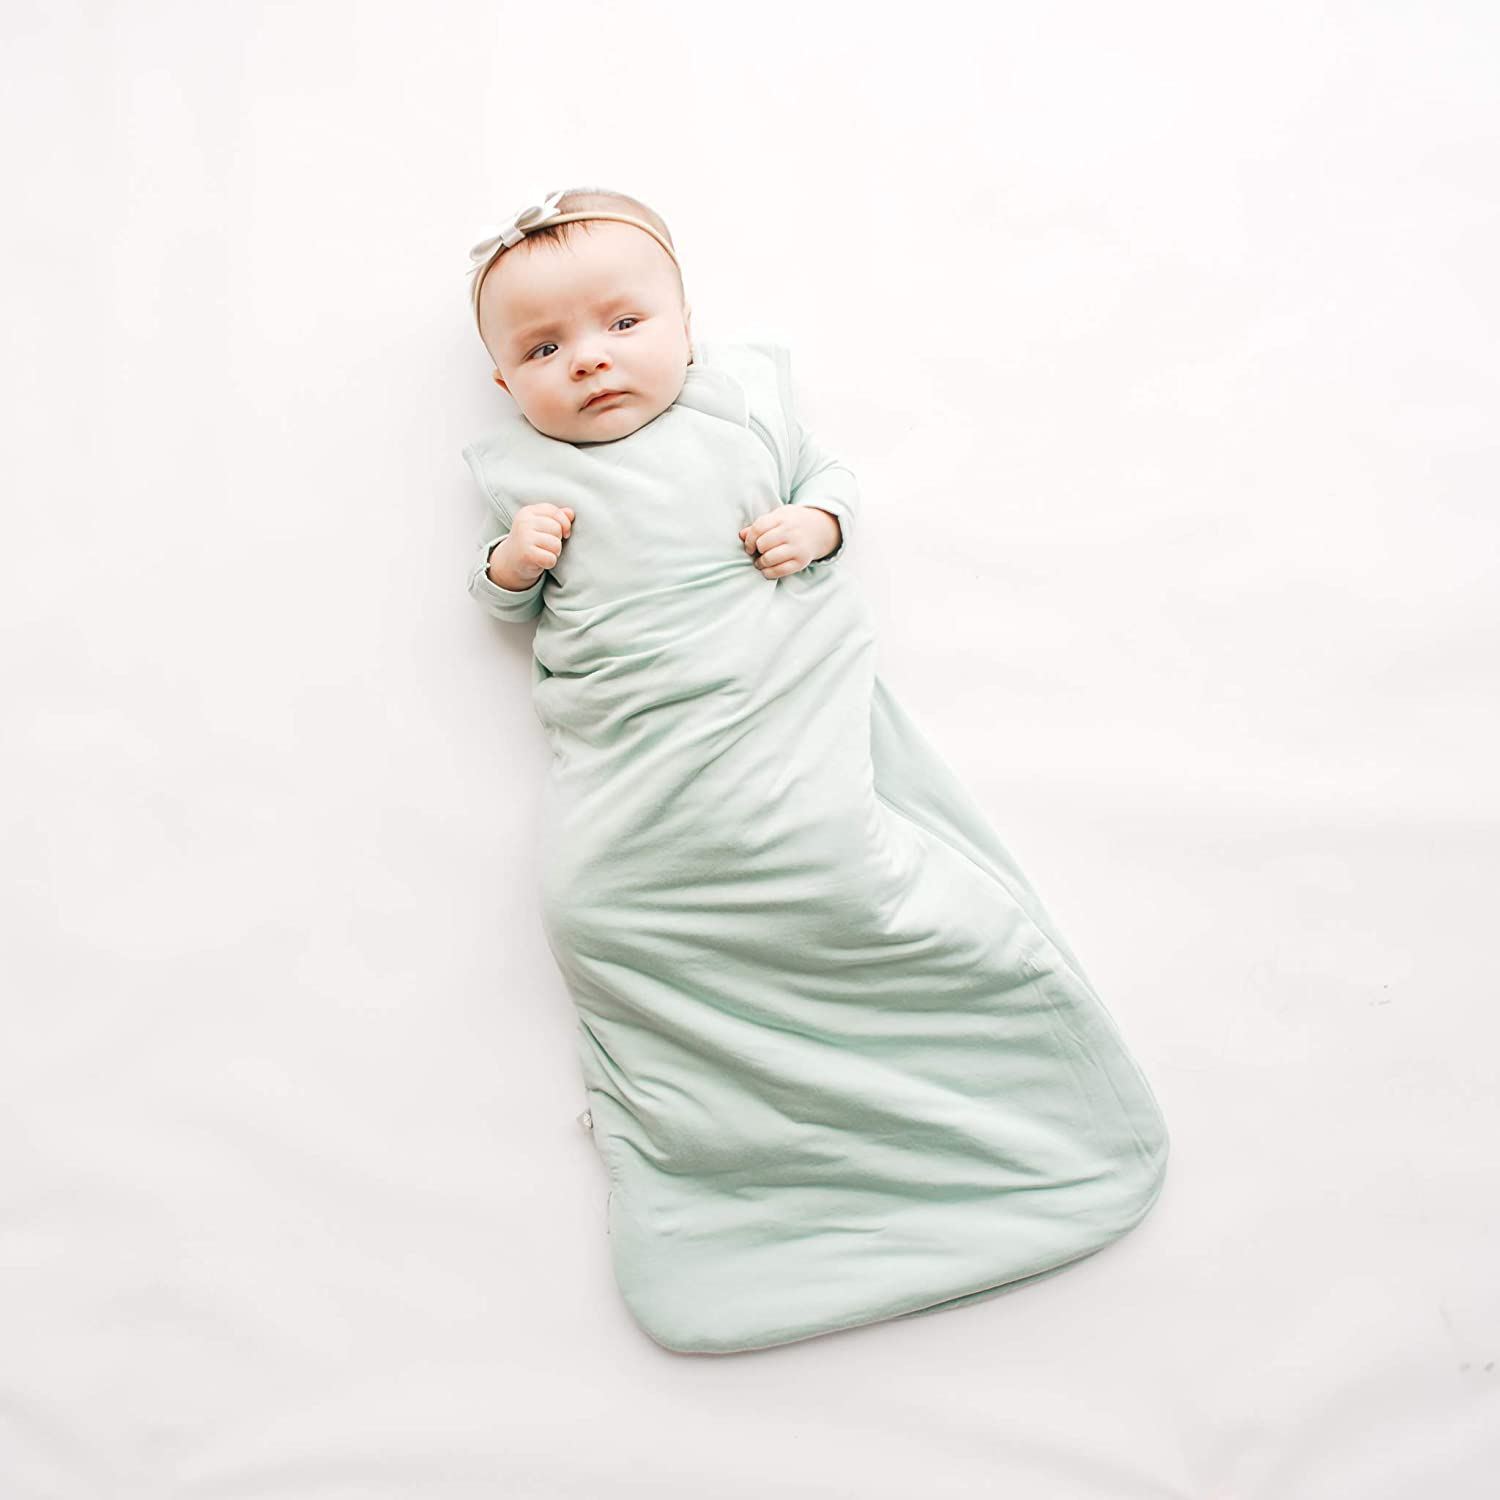 Made of Soft Bamboo Material 18-36 Months, Storm Kyte BABY Sleeping Bag for Toddlers 0-36 Months 2.5 tog